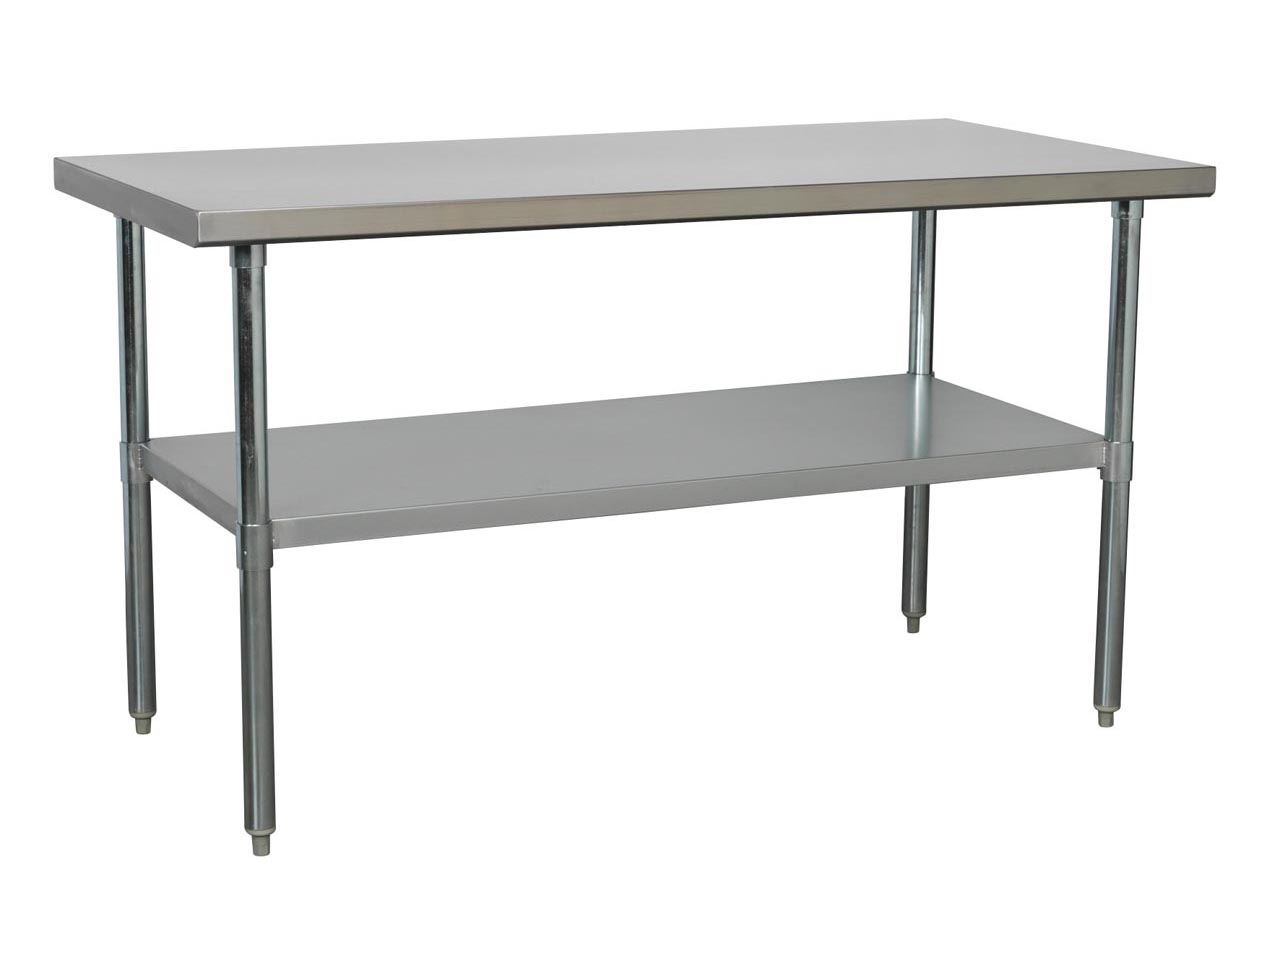 £166.94 Sealey Stainless Steel Workbench 1.5mtr £191 Save £72.94